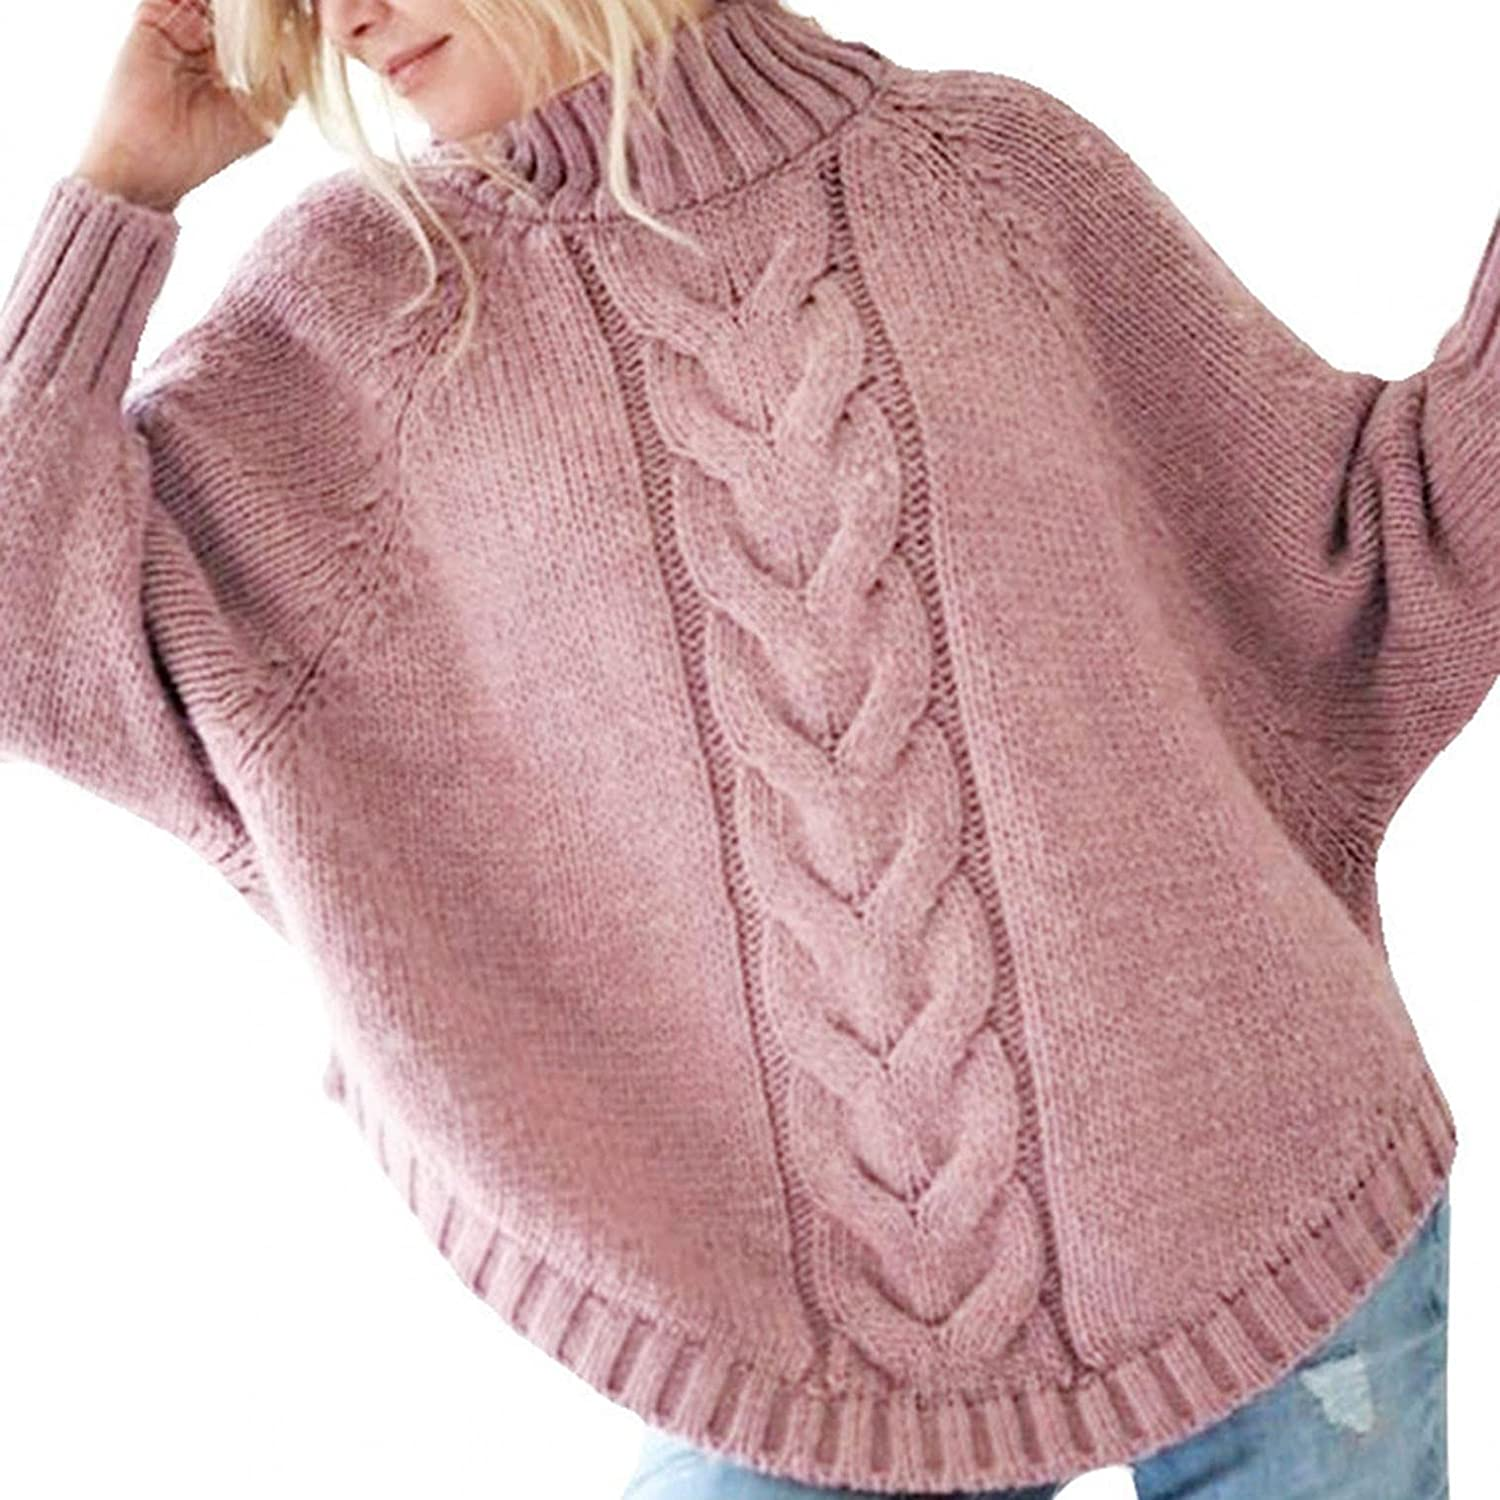 Gibobby Sweaters for Women Casual,Womens Oversized Sweaters Long Batwing Sleeve Loose O Neck Tops Pullover Knit Blouses